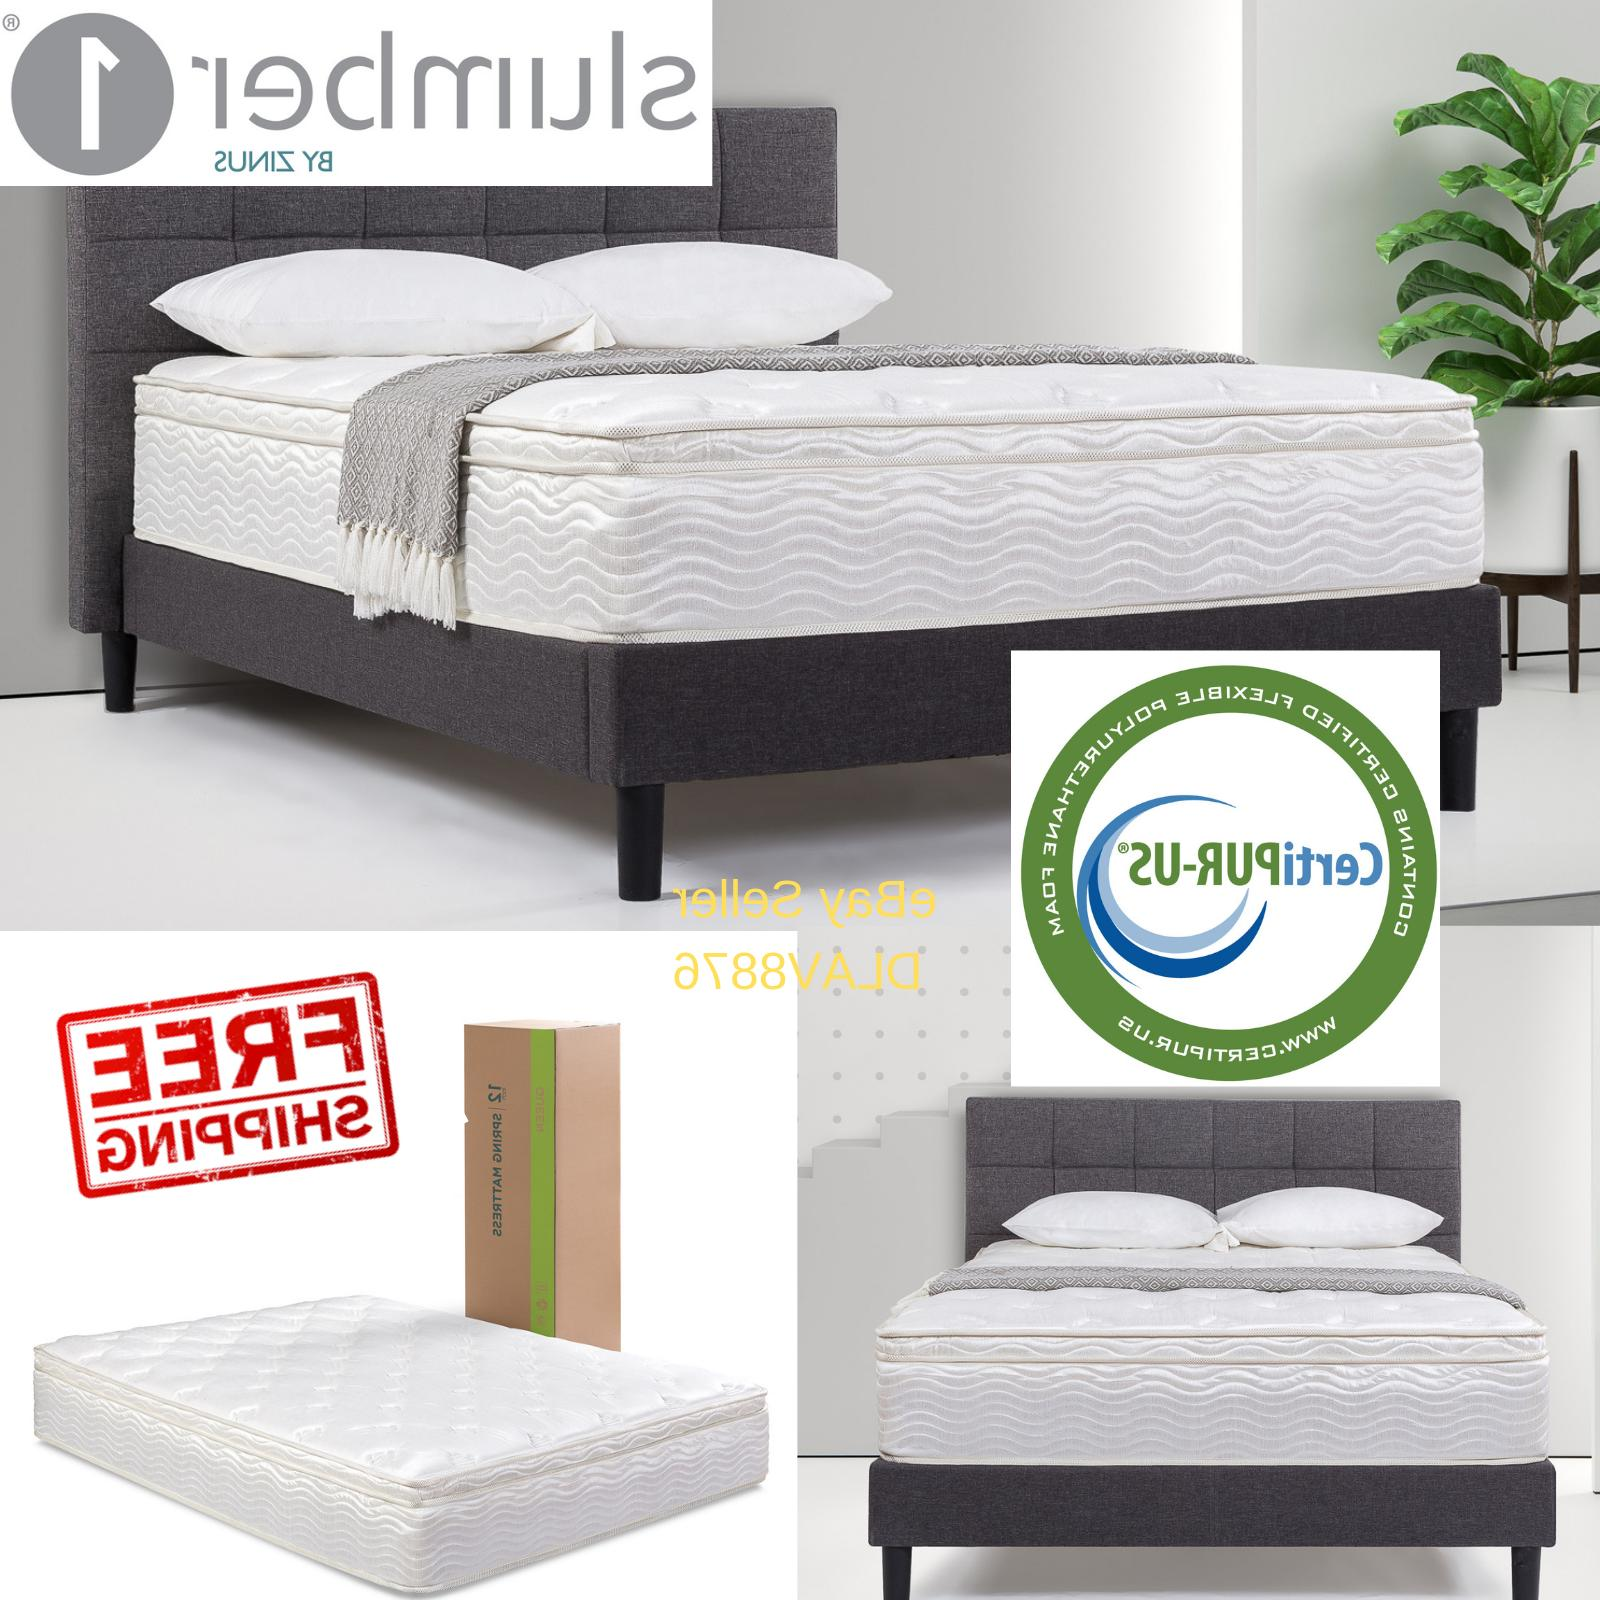 12 inch spring support king size mattress